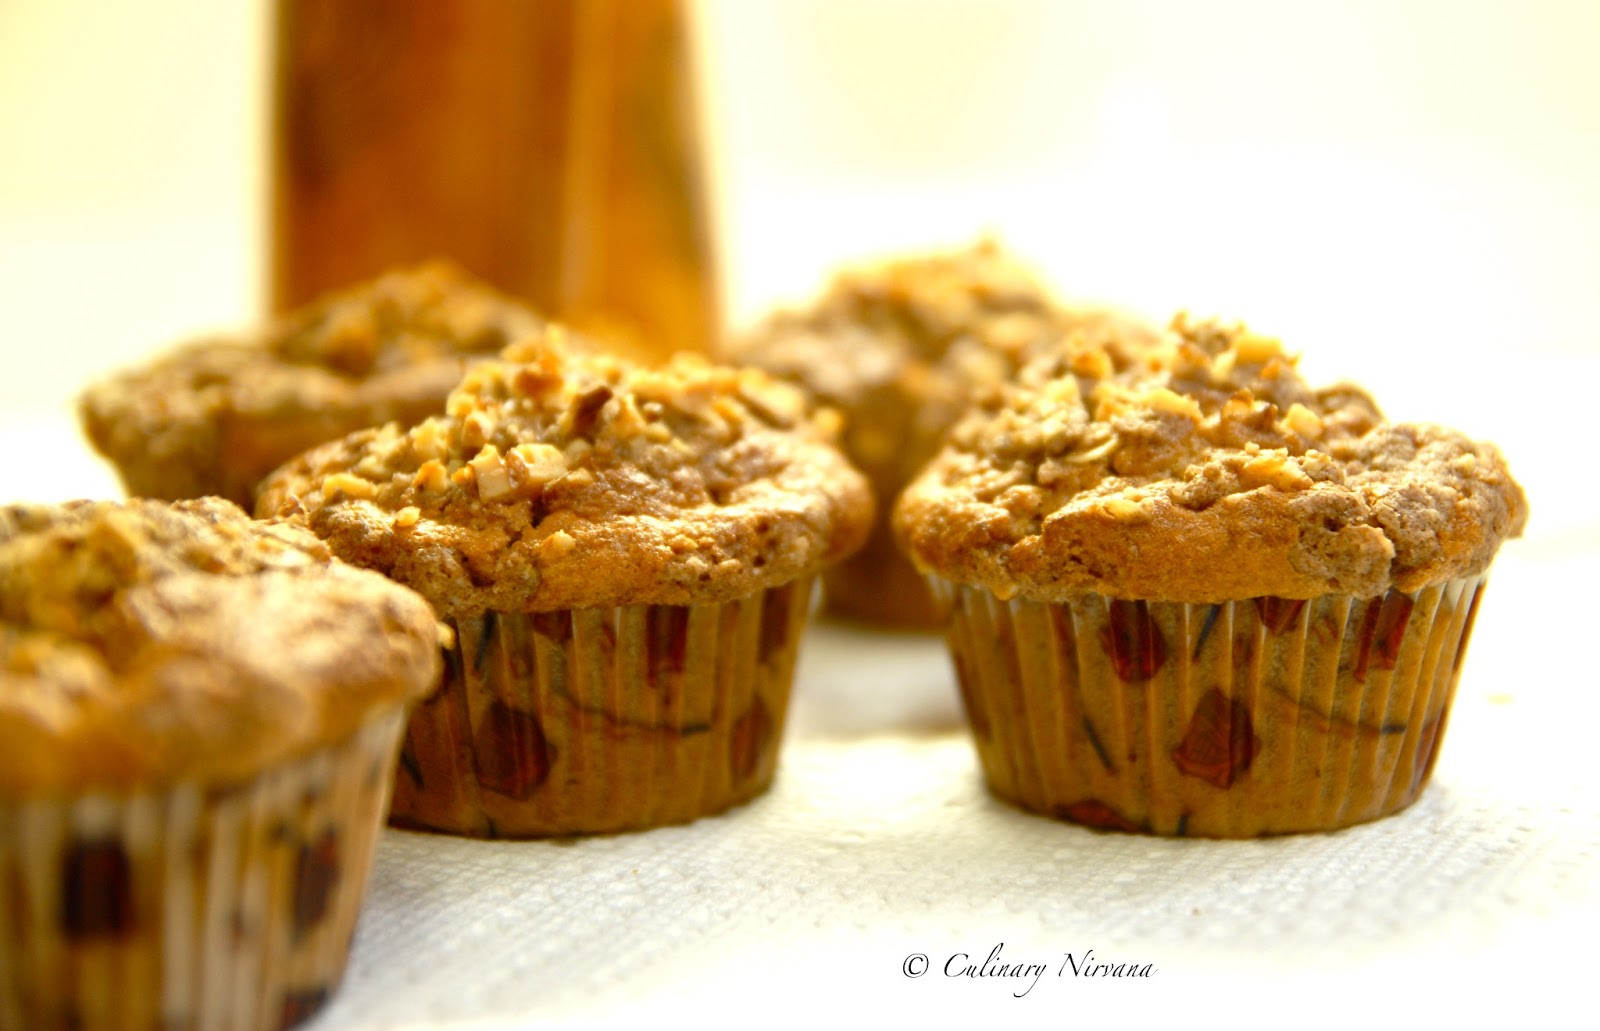 Culinary Nirvana!: Warm spiced banana muffins with Streusel topping!